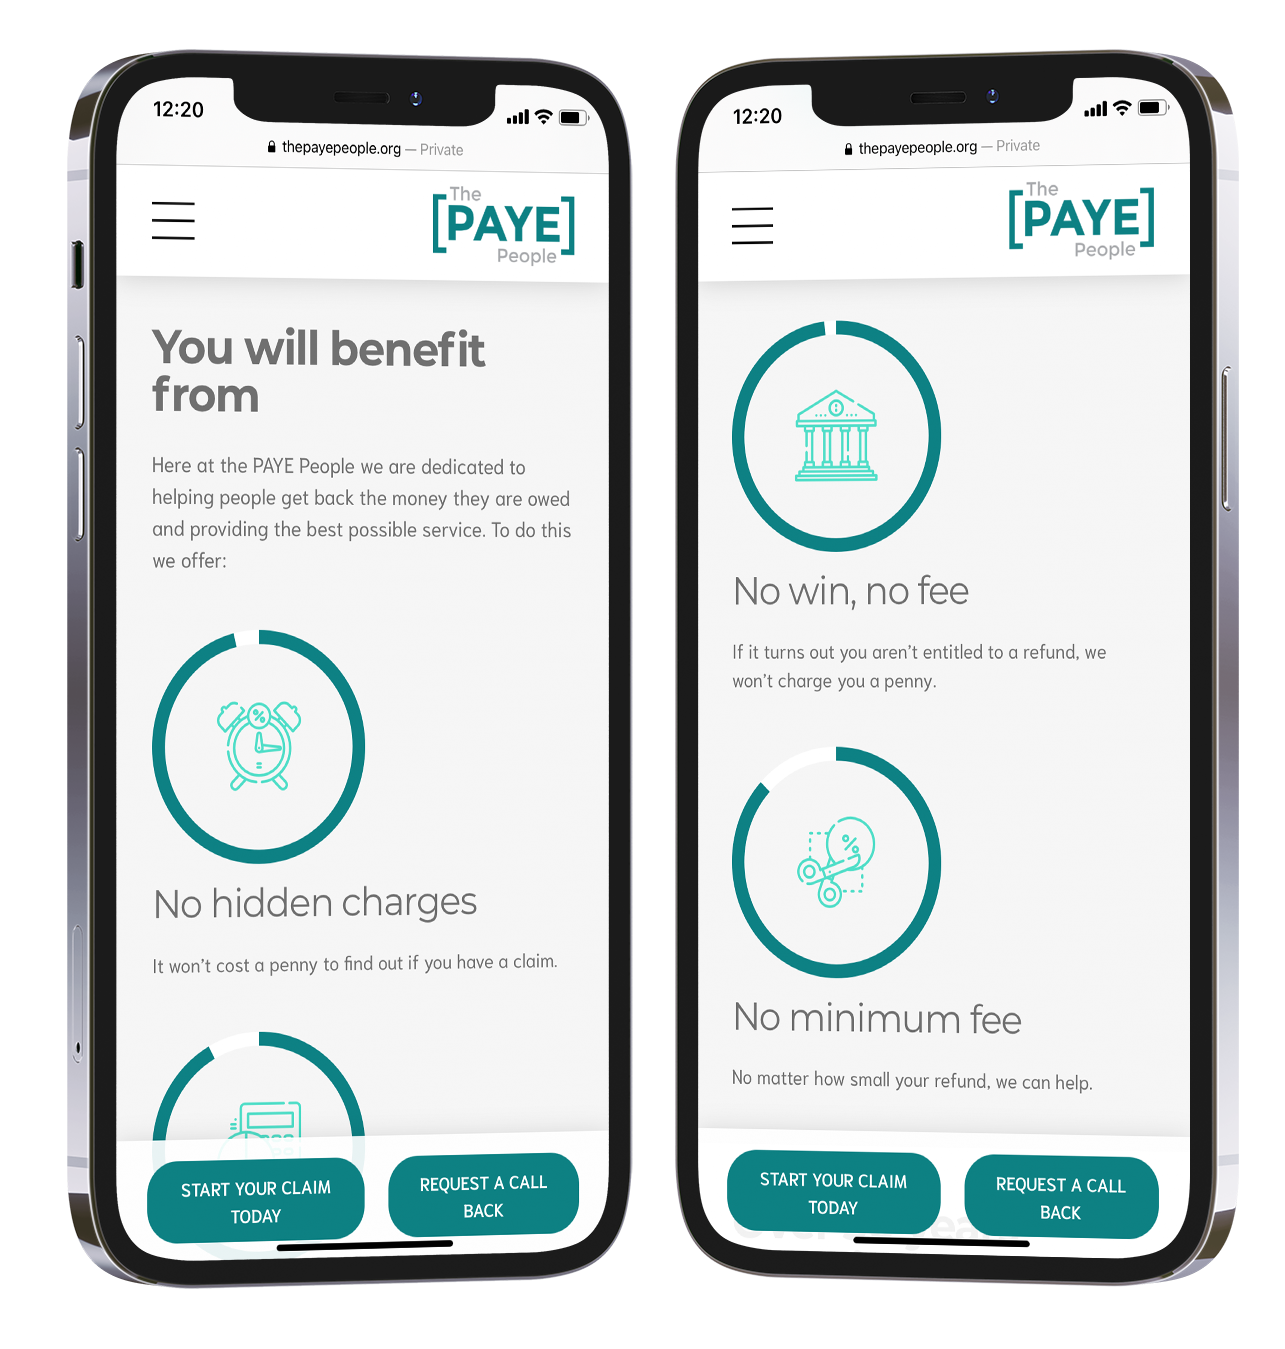 A screenshot of two iPhones with the PAYE People interface displayed on both screens.